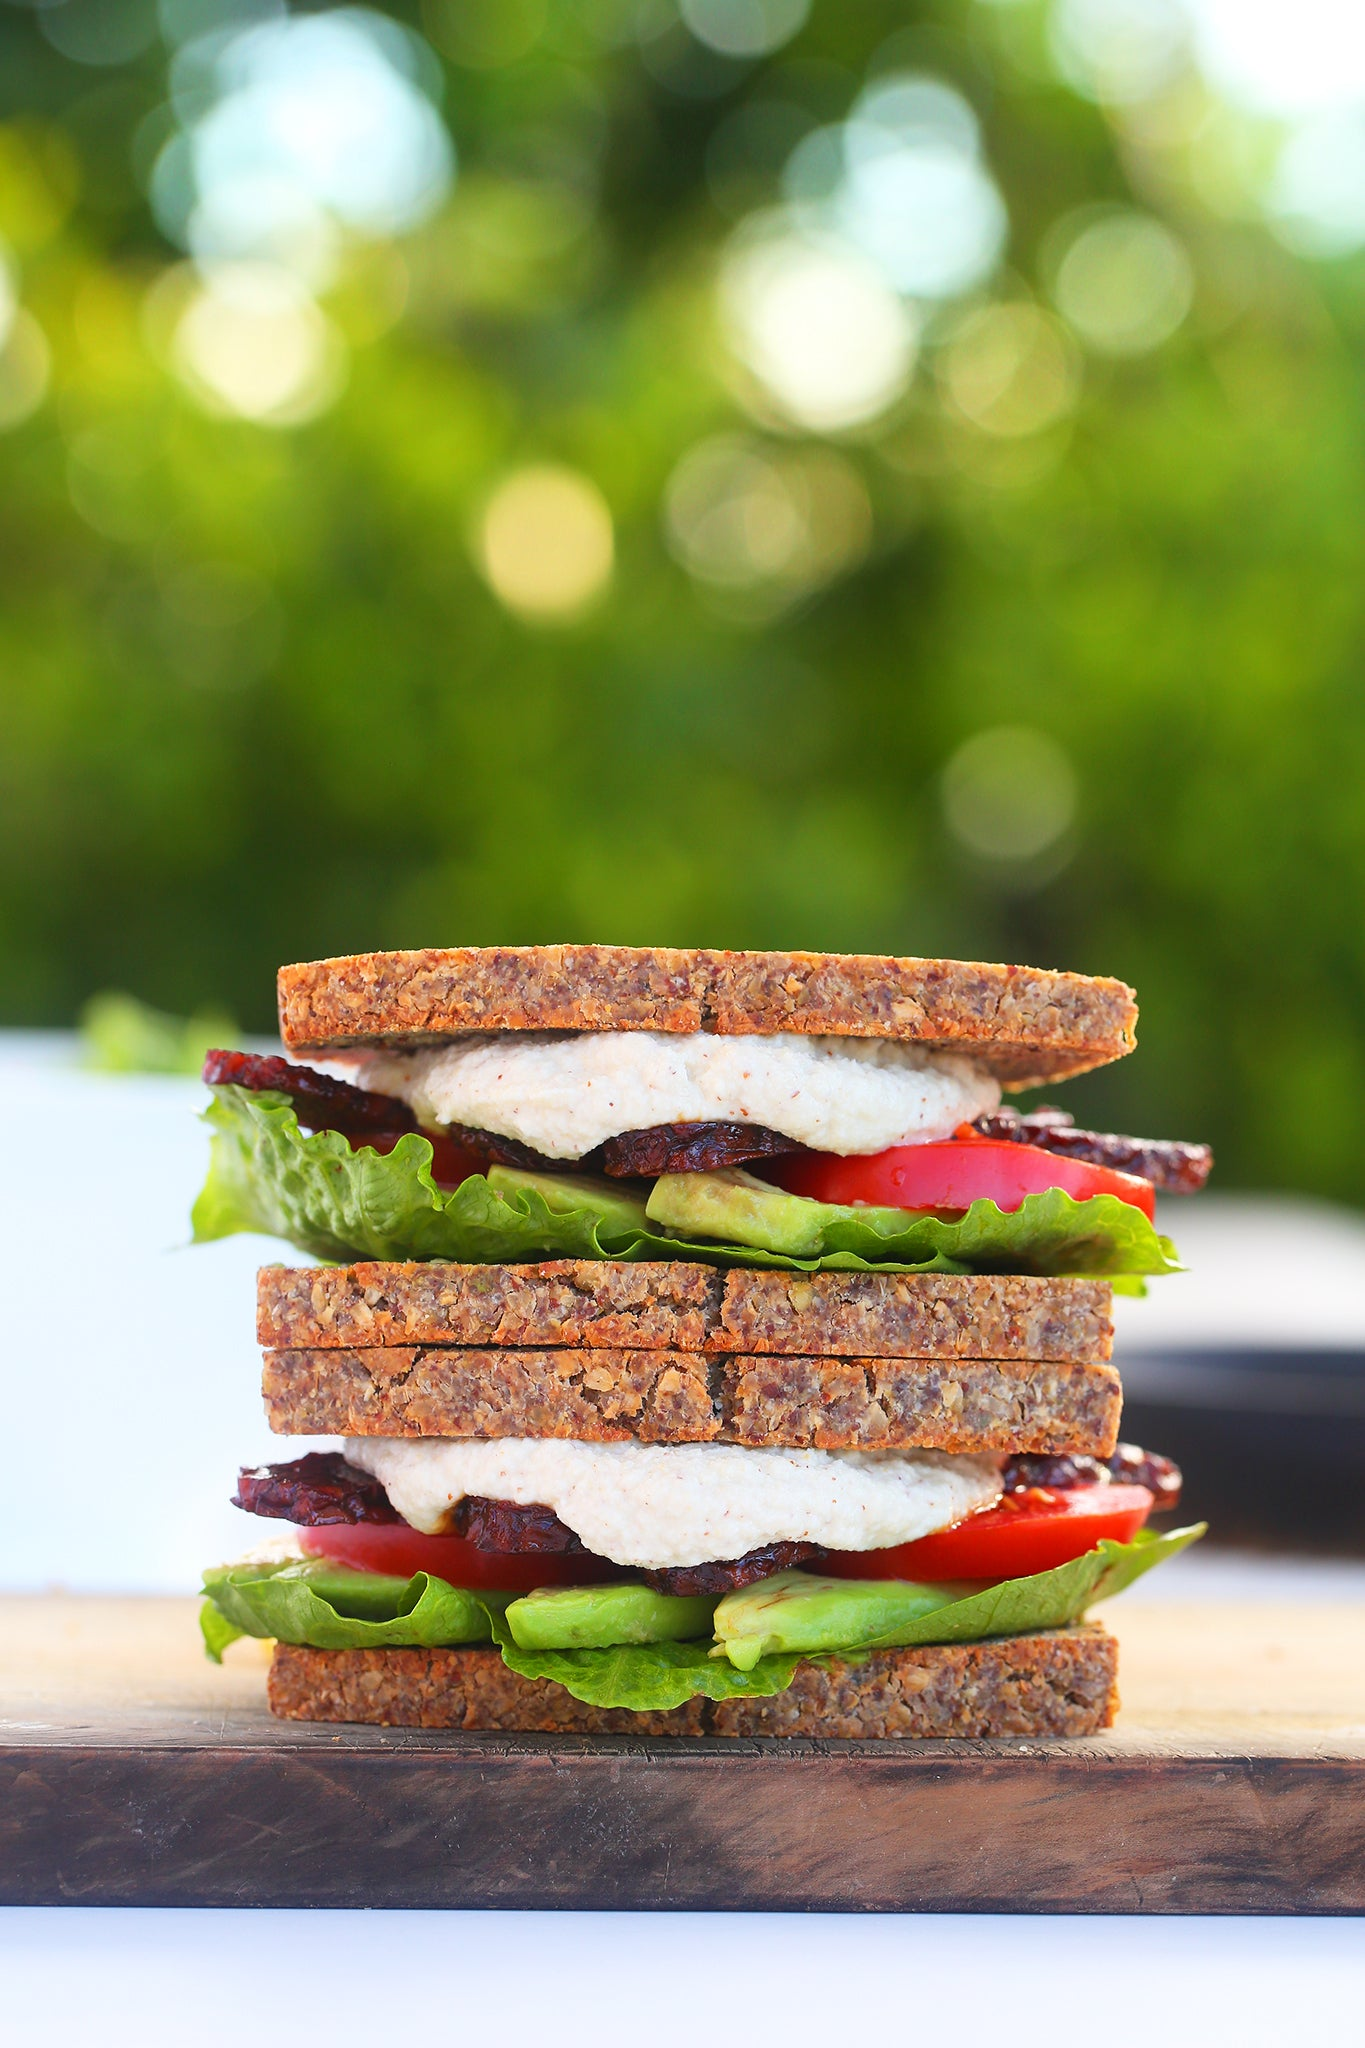 SMOKEY TEMPEH BLAT - vegan, plant based, dairy free, gluten free, natural, lunch, tempeh bacon, sweet and salty, begoodorganics